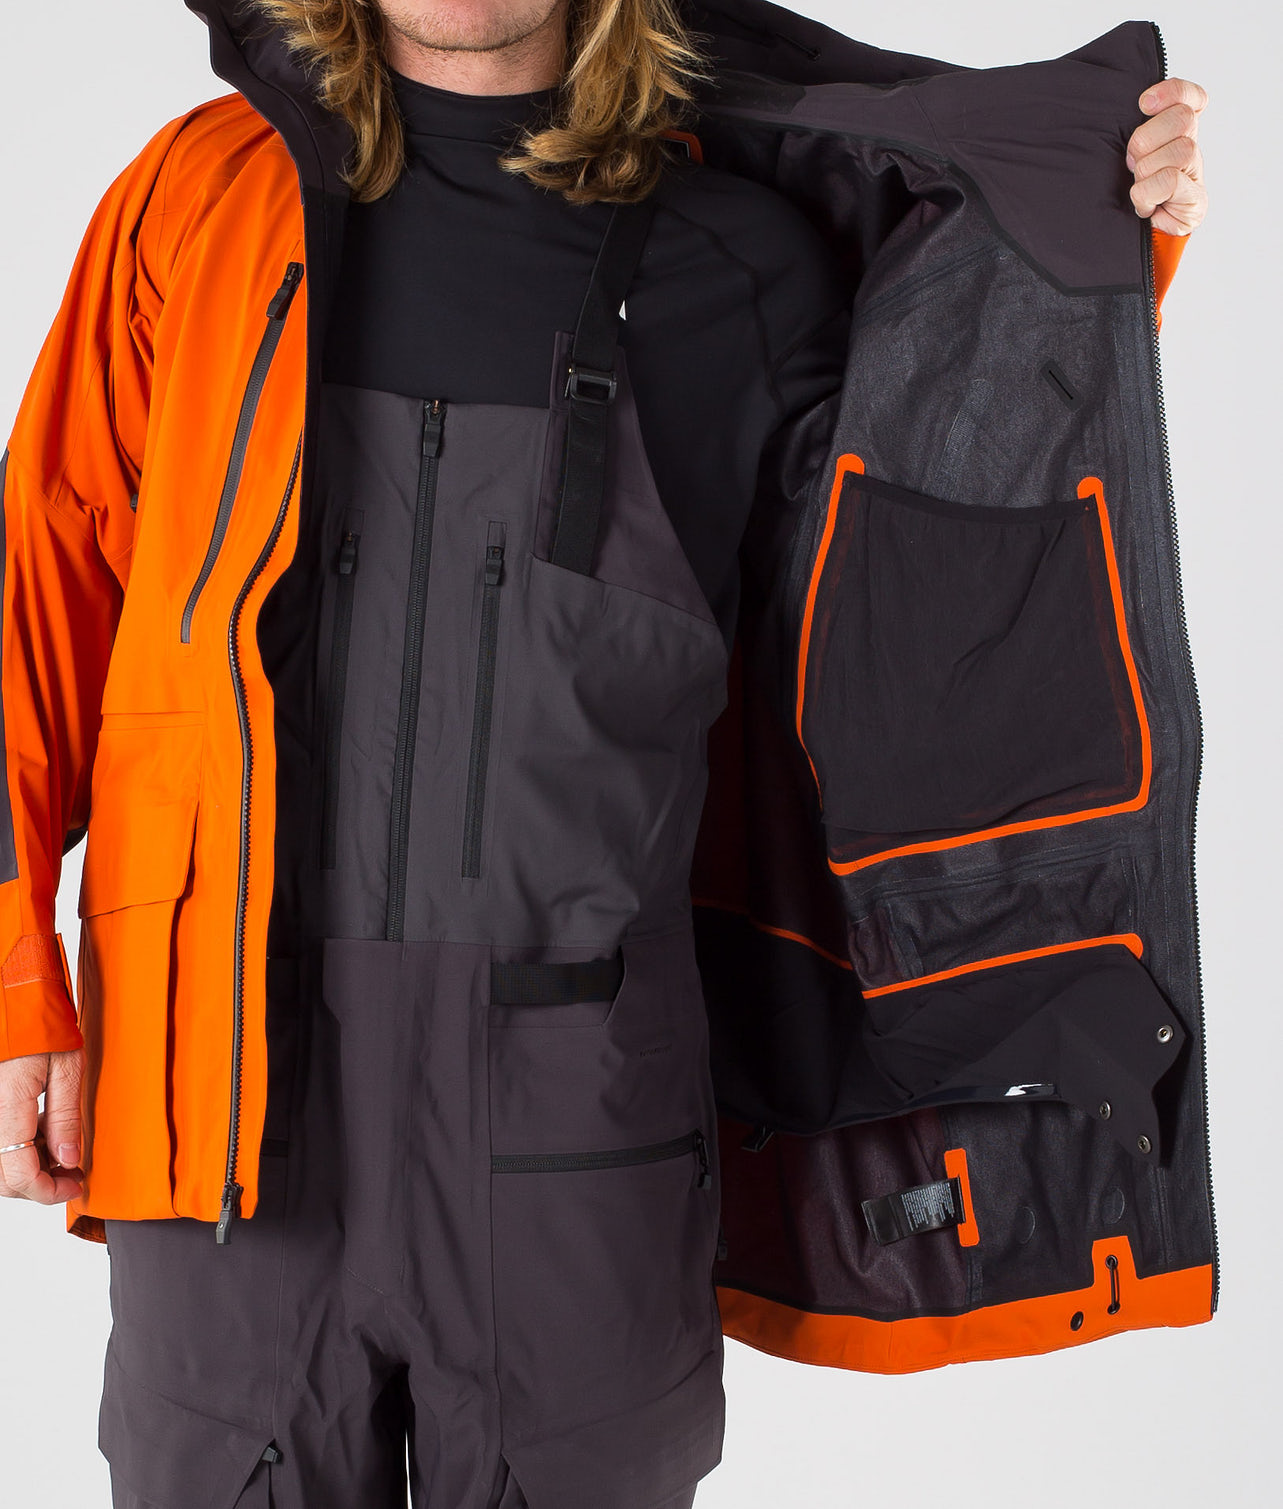 Buy A-Cad Futurelight Snowboard Jacket from The North Face at Ridestore.com - Always free shipping, free returns and 30 days money back guarantee